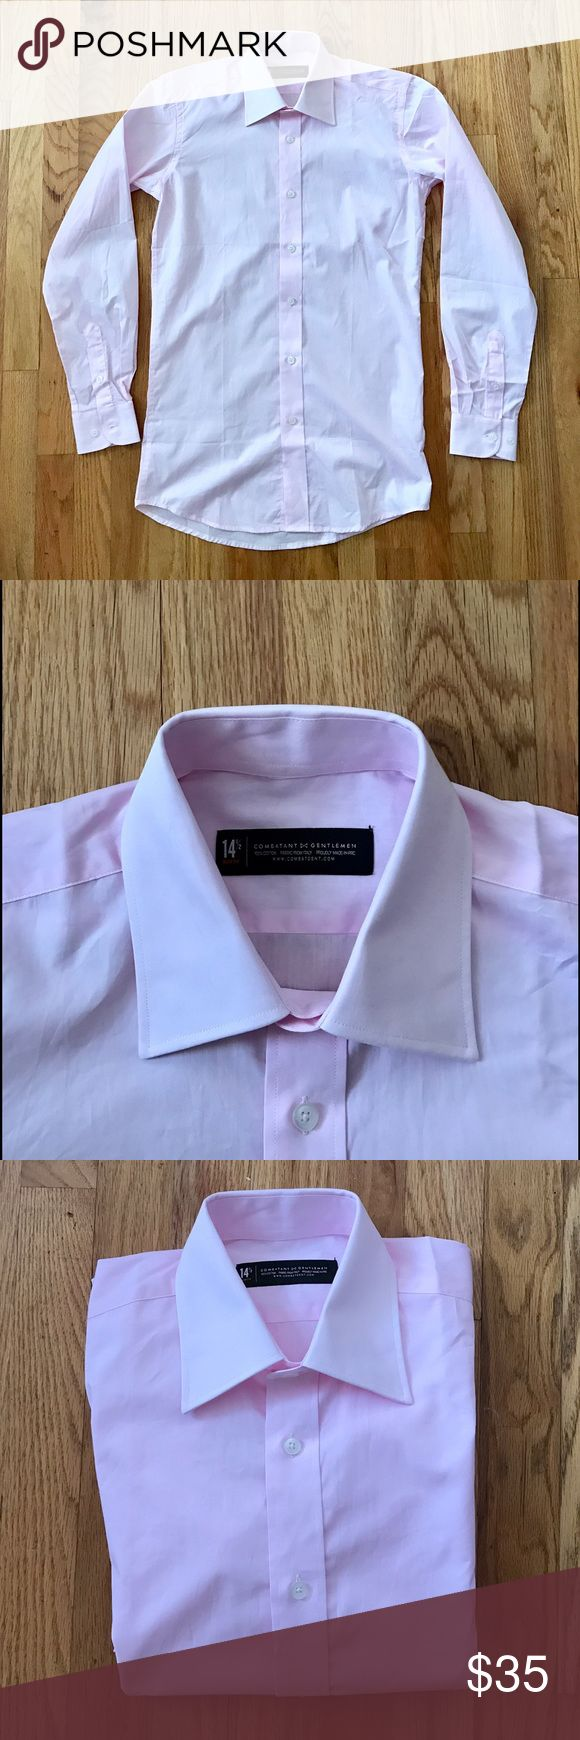 """Slim fit pink oxford shirt Light pink slim fit oxford shirt by Combatant Gentleman. My boyfriend bought this shirt and it's too small for him. Would be good for a slim guy but could definitely be worn by a woman as well! Color is most accurate in first pic. Fabric from Italy. New condition. 